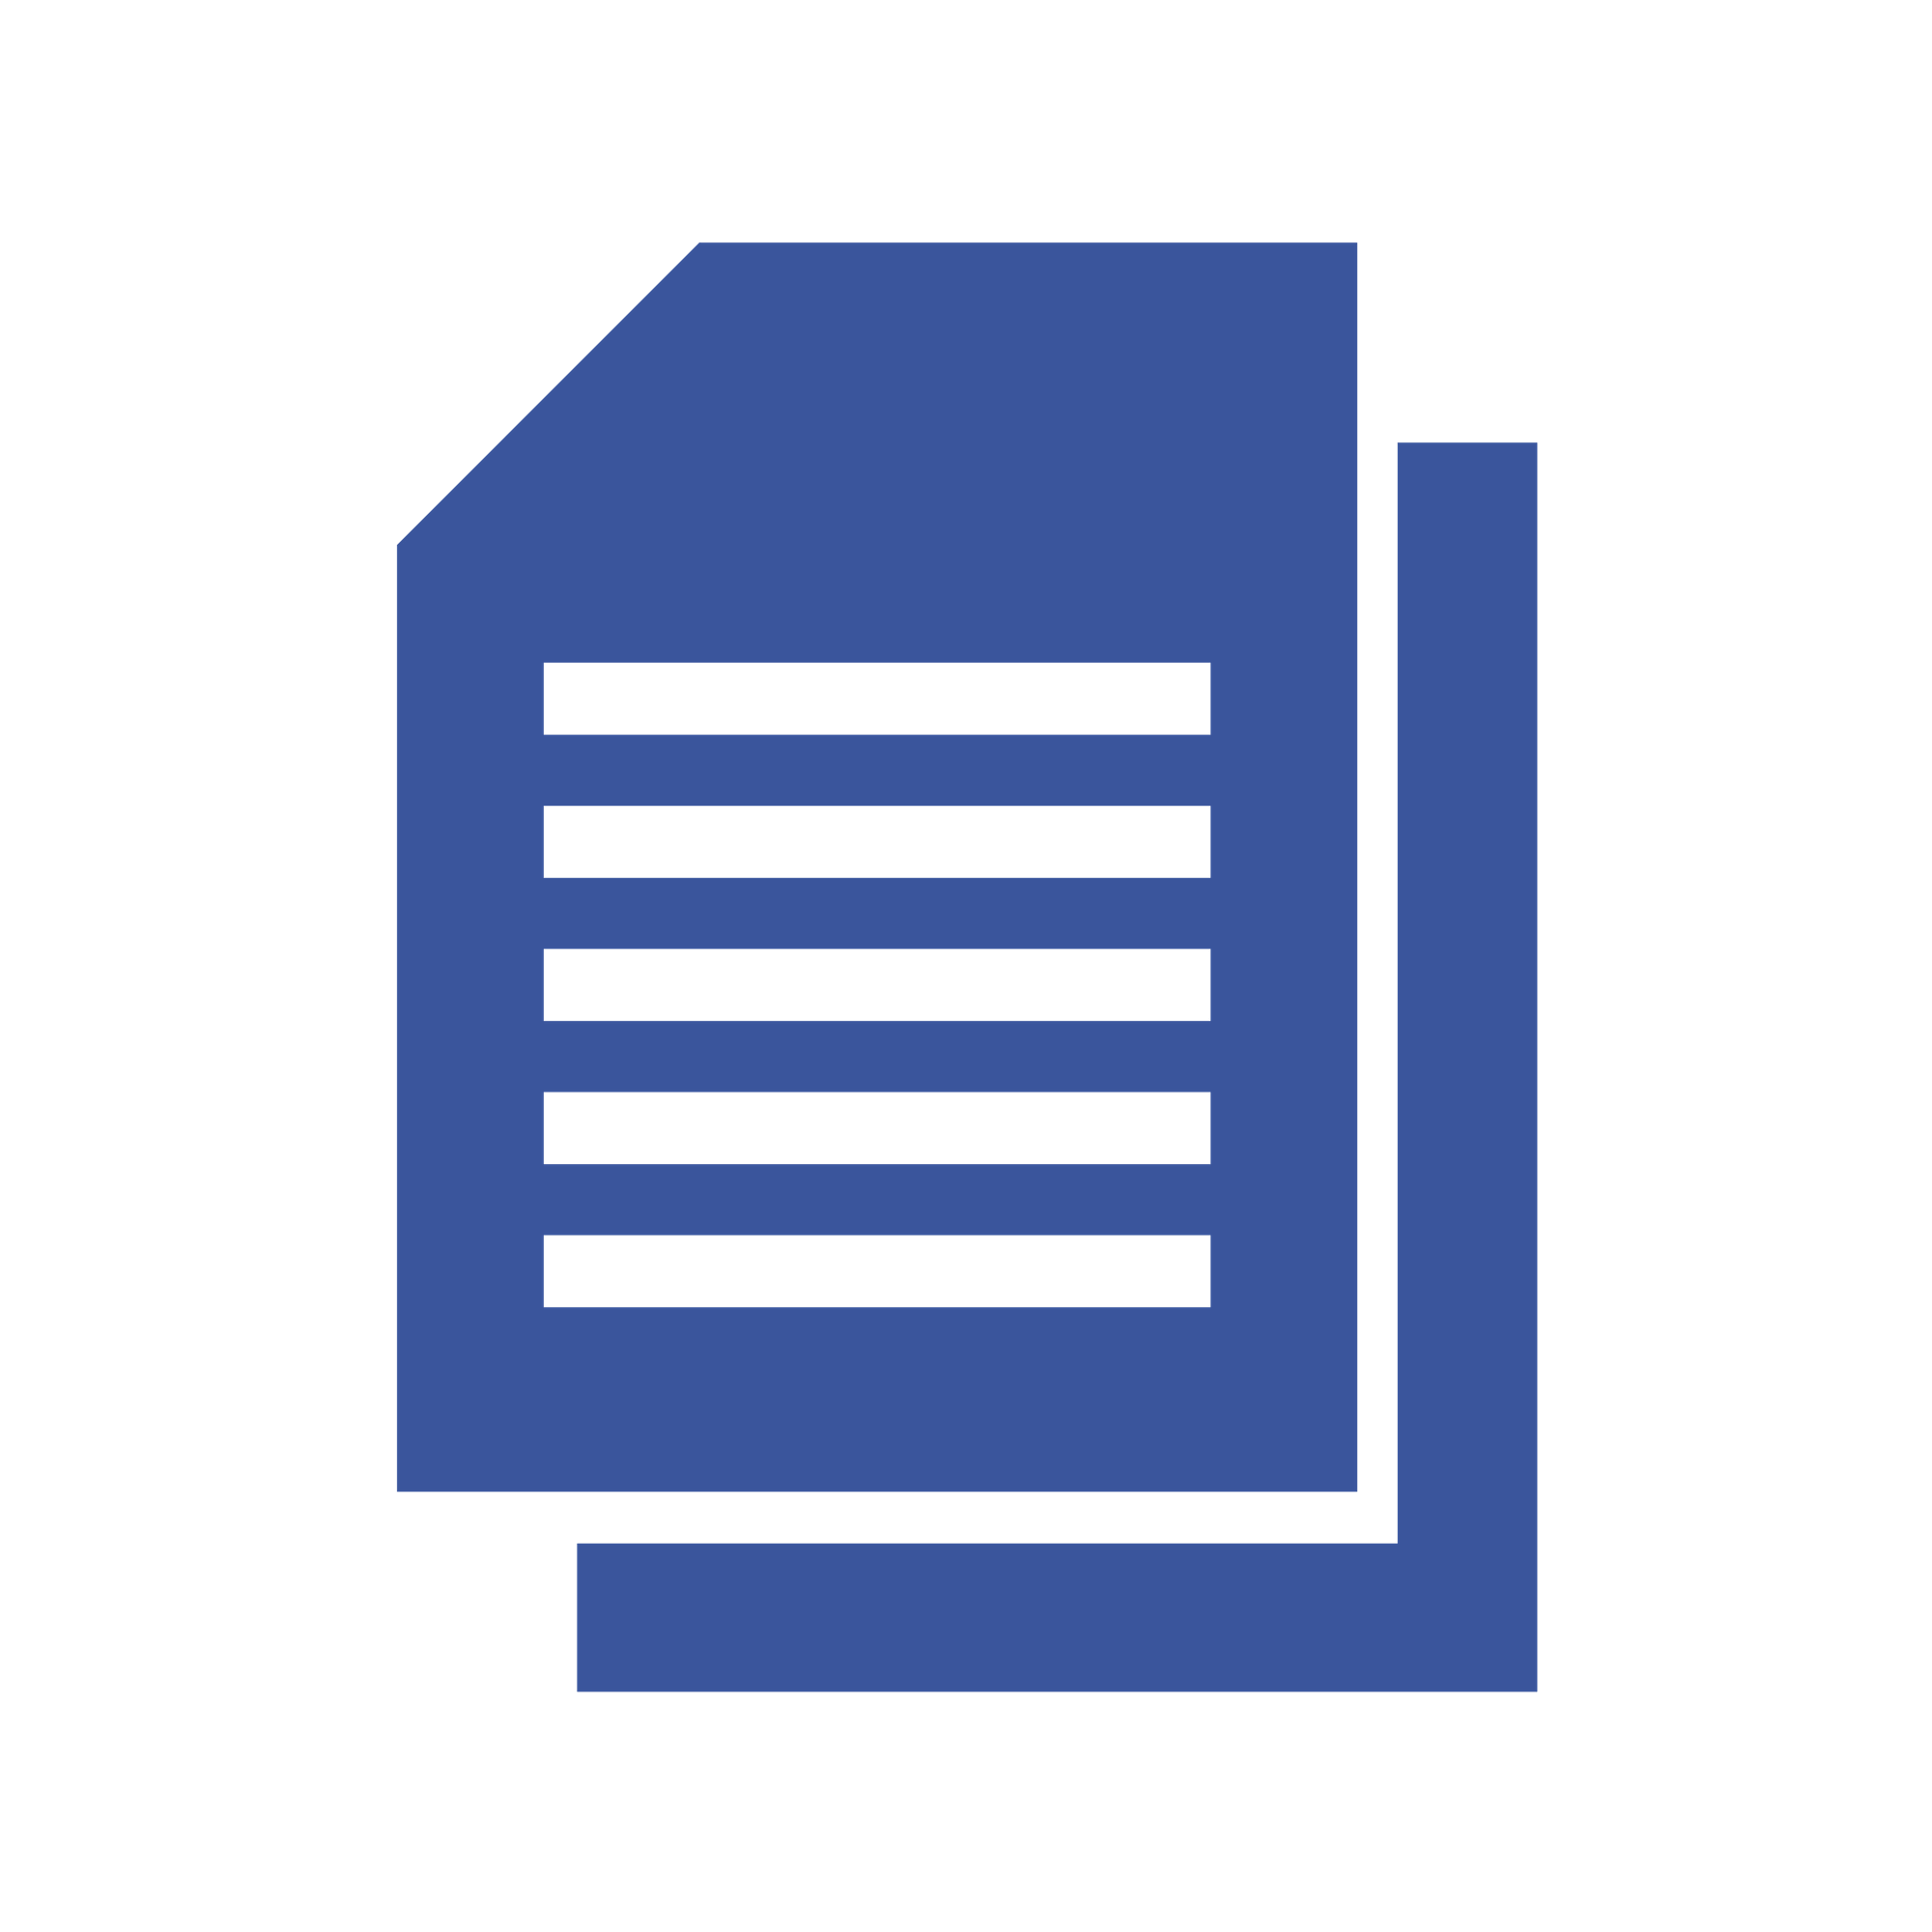 research_development_icon.png